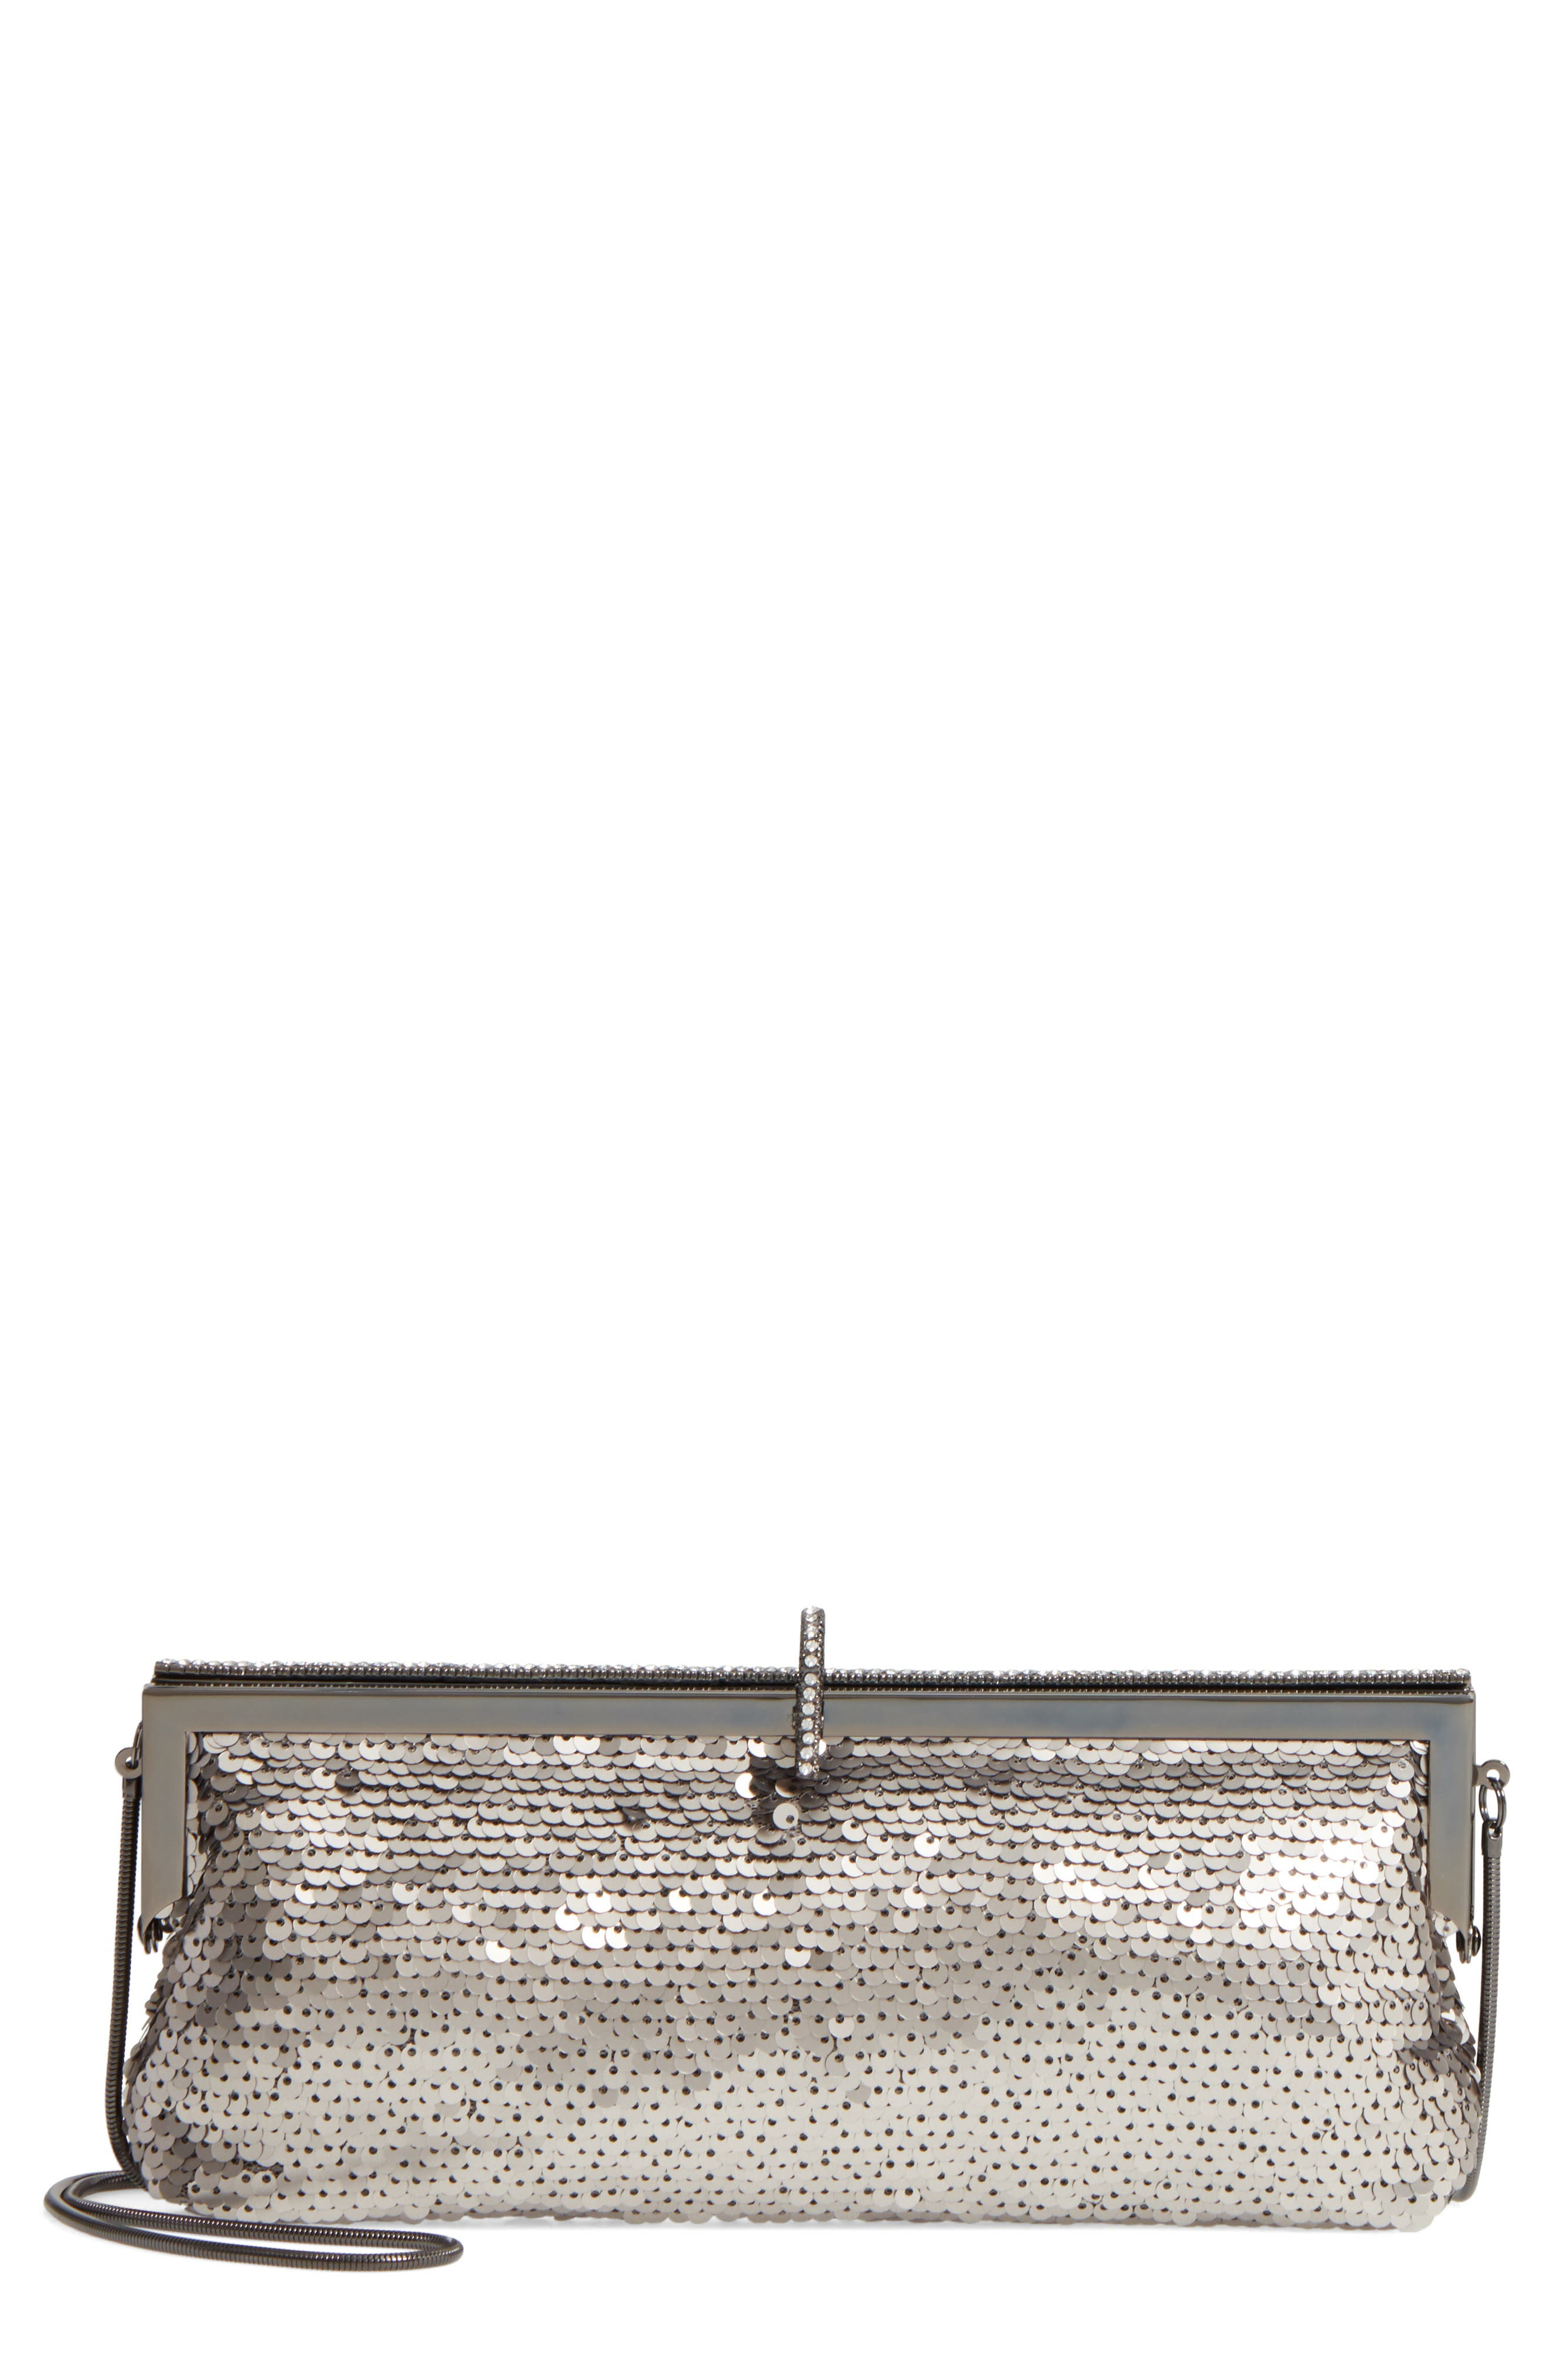 Badgley Mischka Dazzle Sequin Frame Clutch,                             Main thumbnail 1, color,                             040